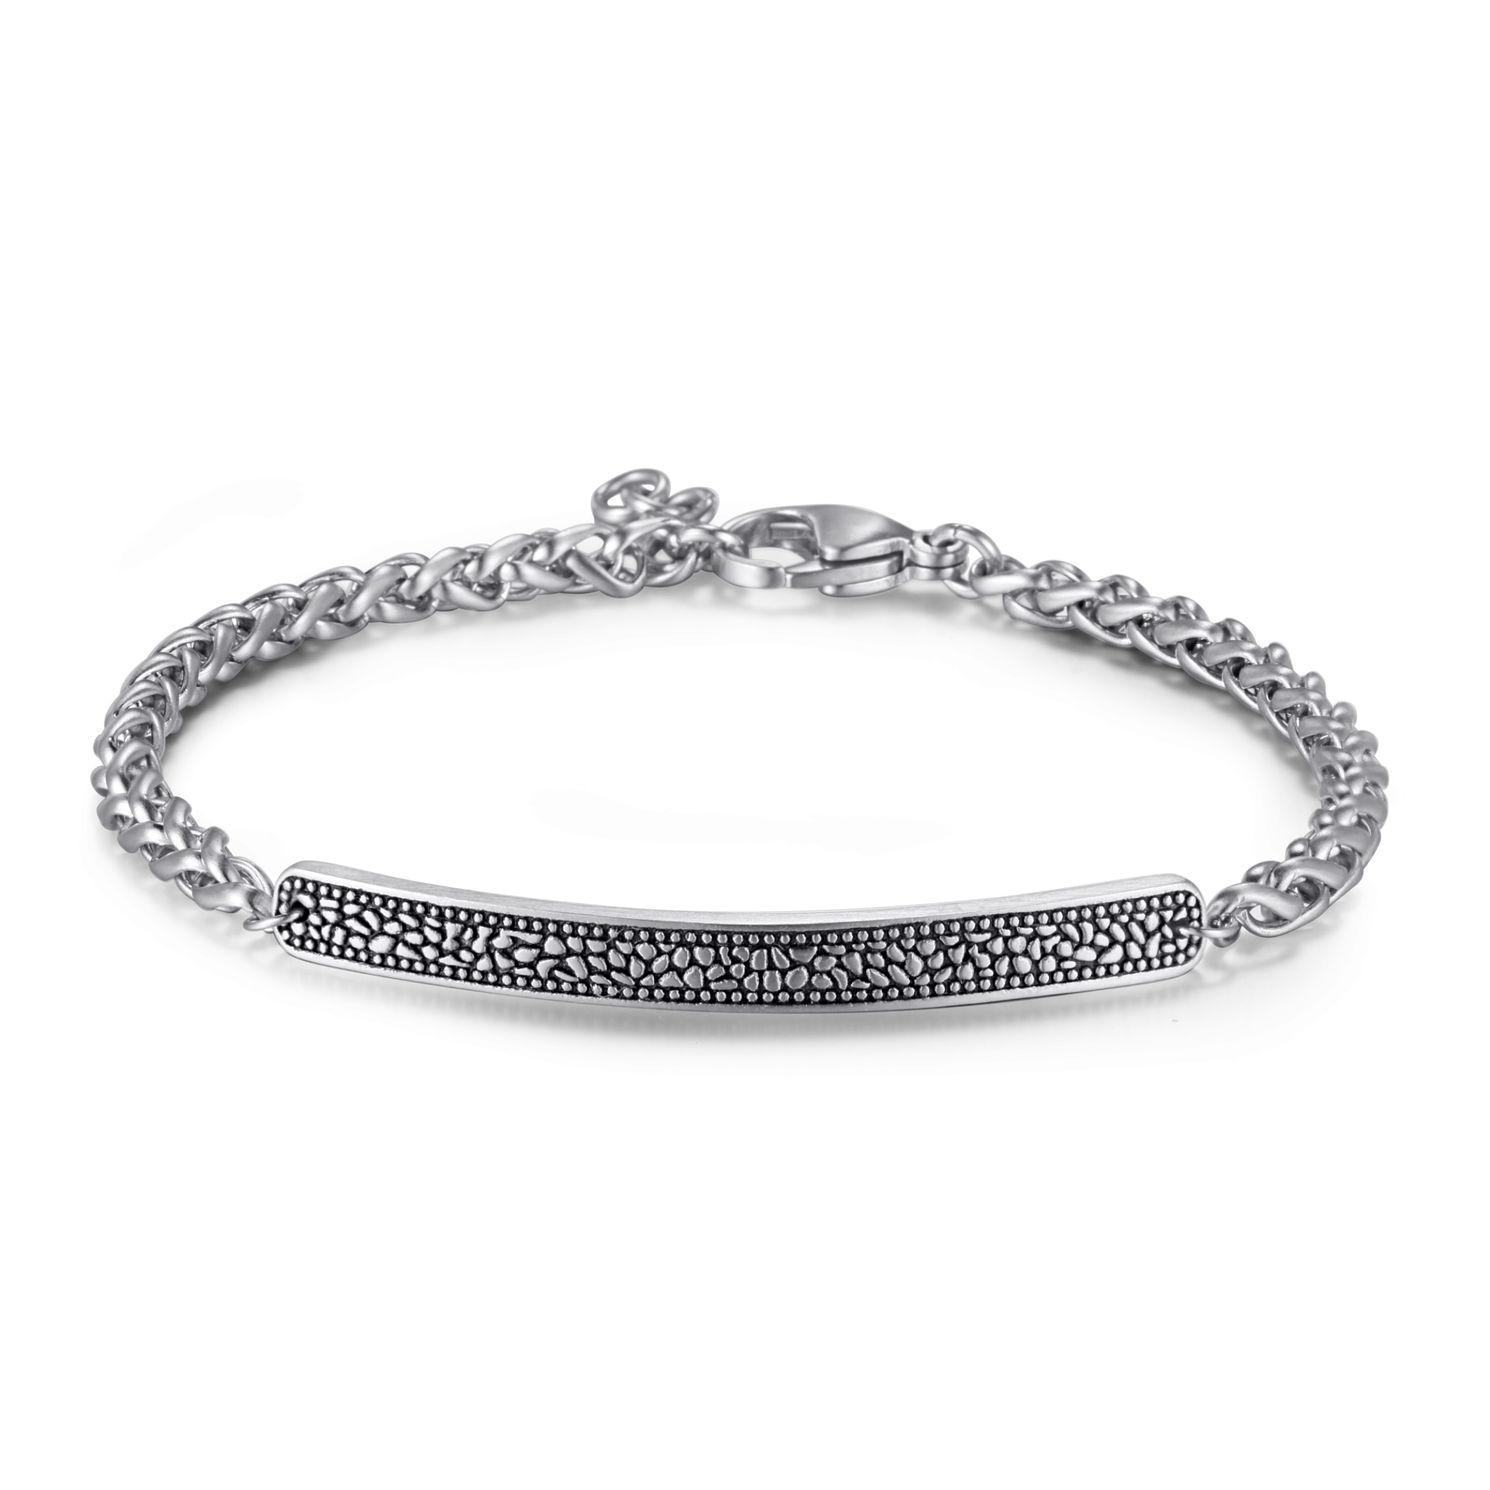 Kingka Stainless Steel Reptile ID Bracelet - Product number 5125952